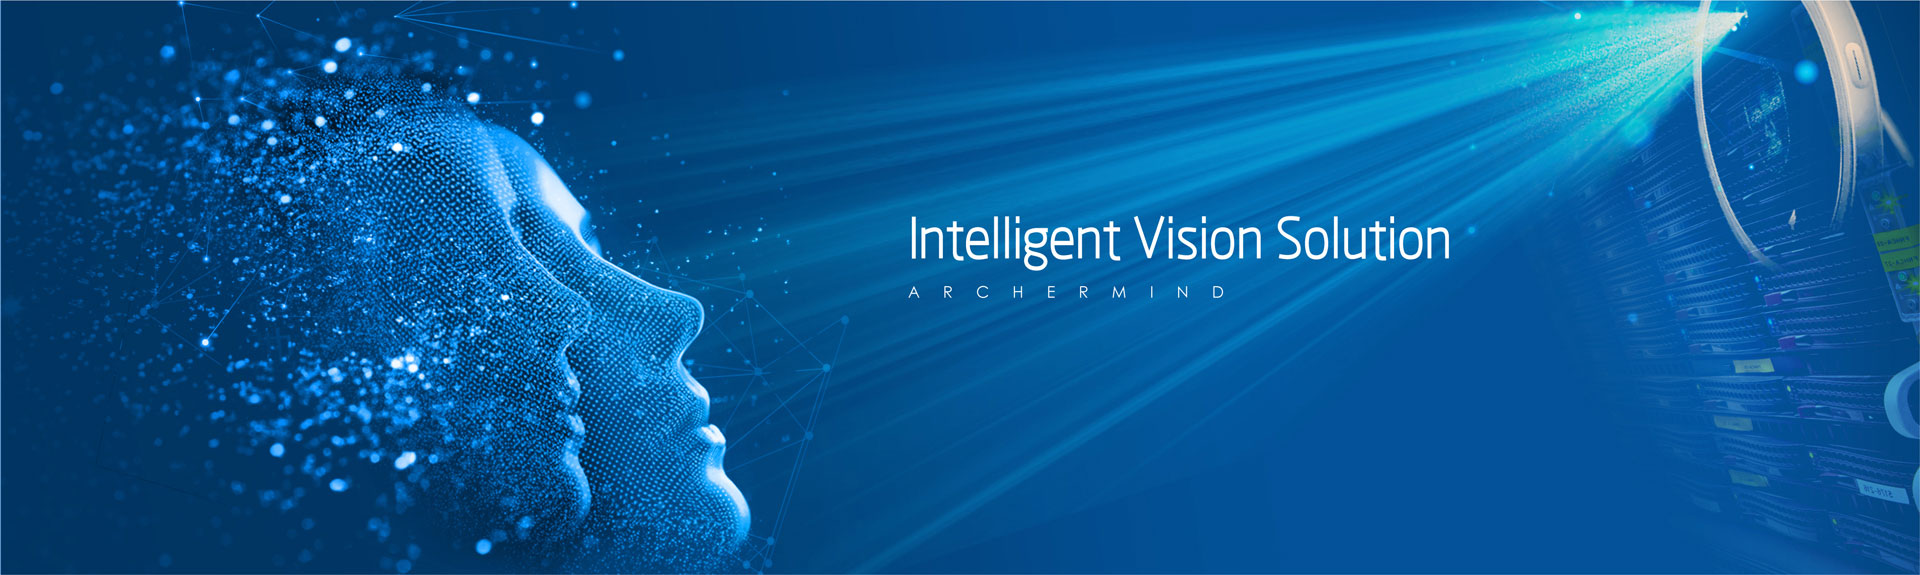 inteligent vision solution_en